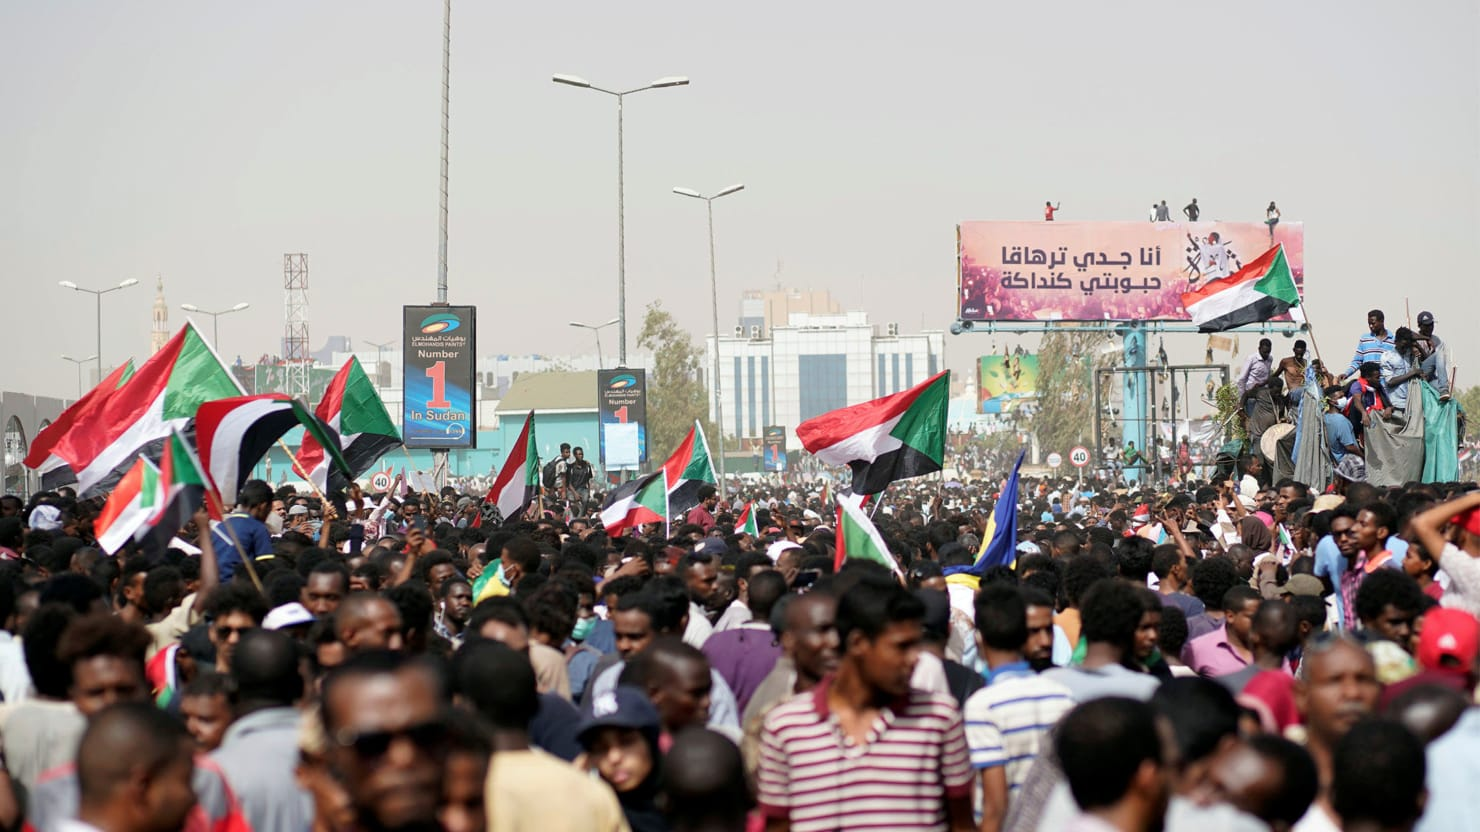 Omar al-Bashir, Sudan's Dictatorial President, Ousted After Months of Protests